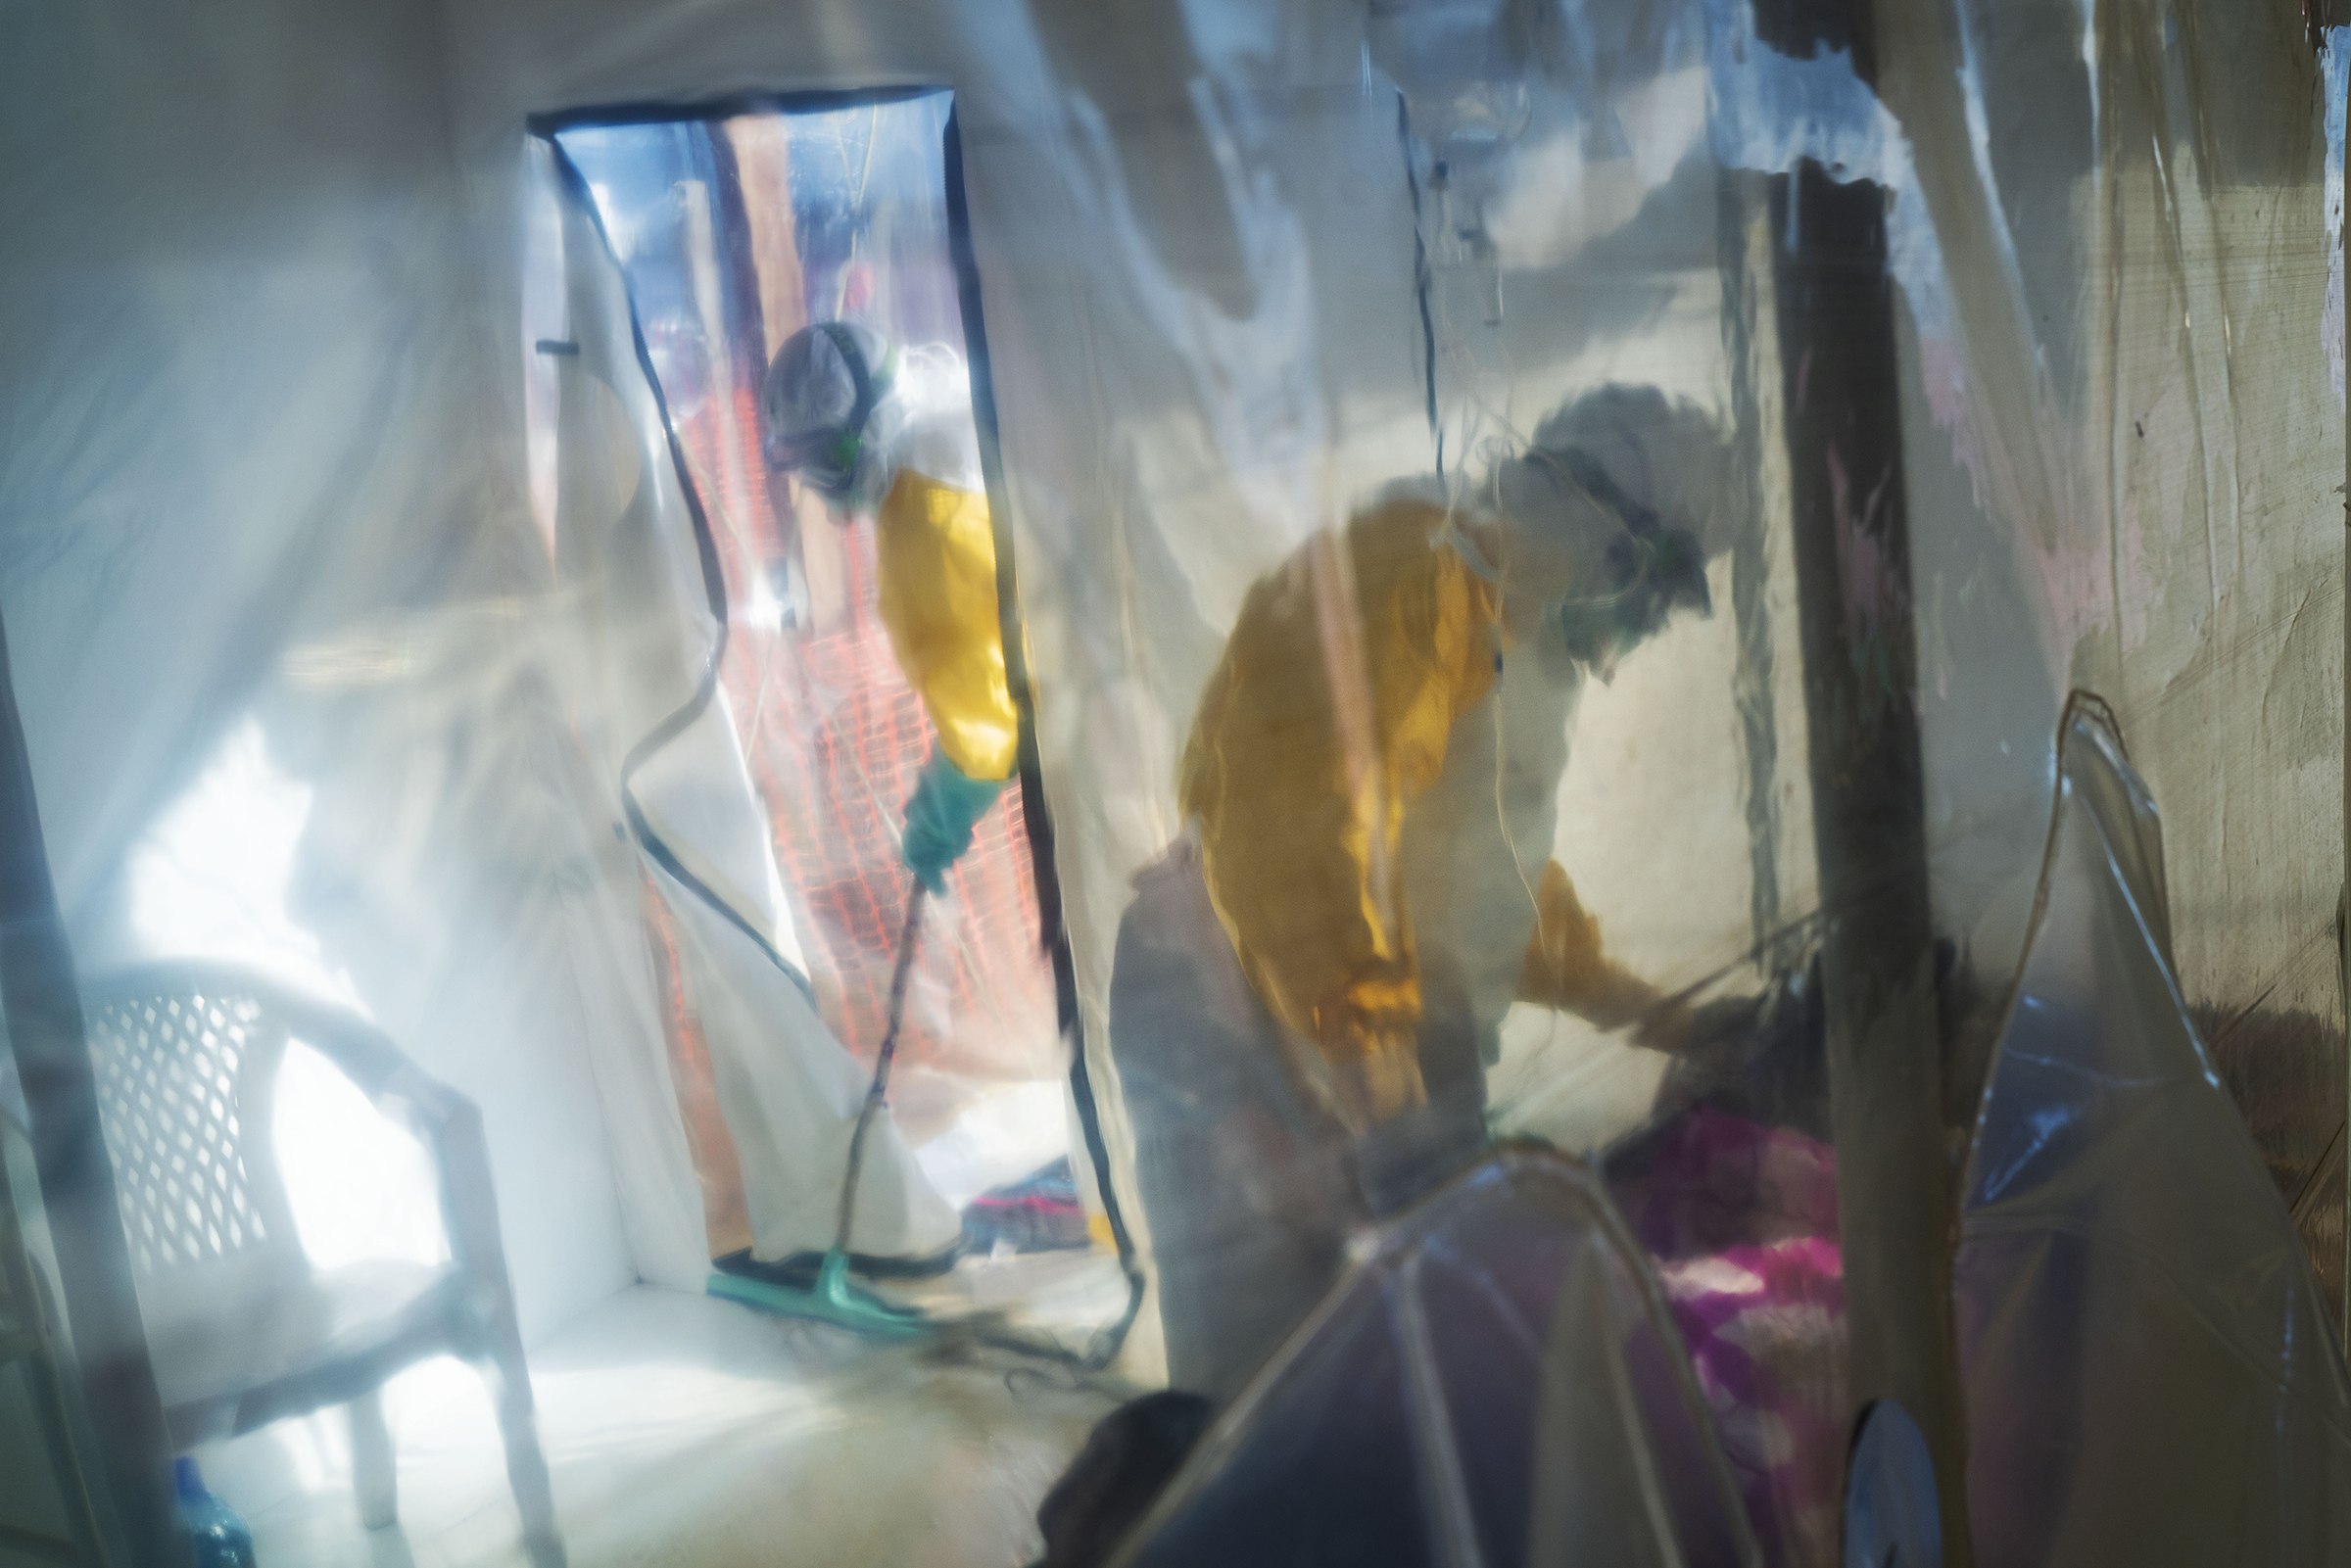 Health workers wearing protective suits tend to an Ebola victim kept in an isolation cube in Beni, Congo on March 13, 2019.